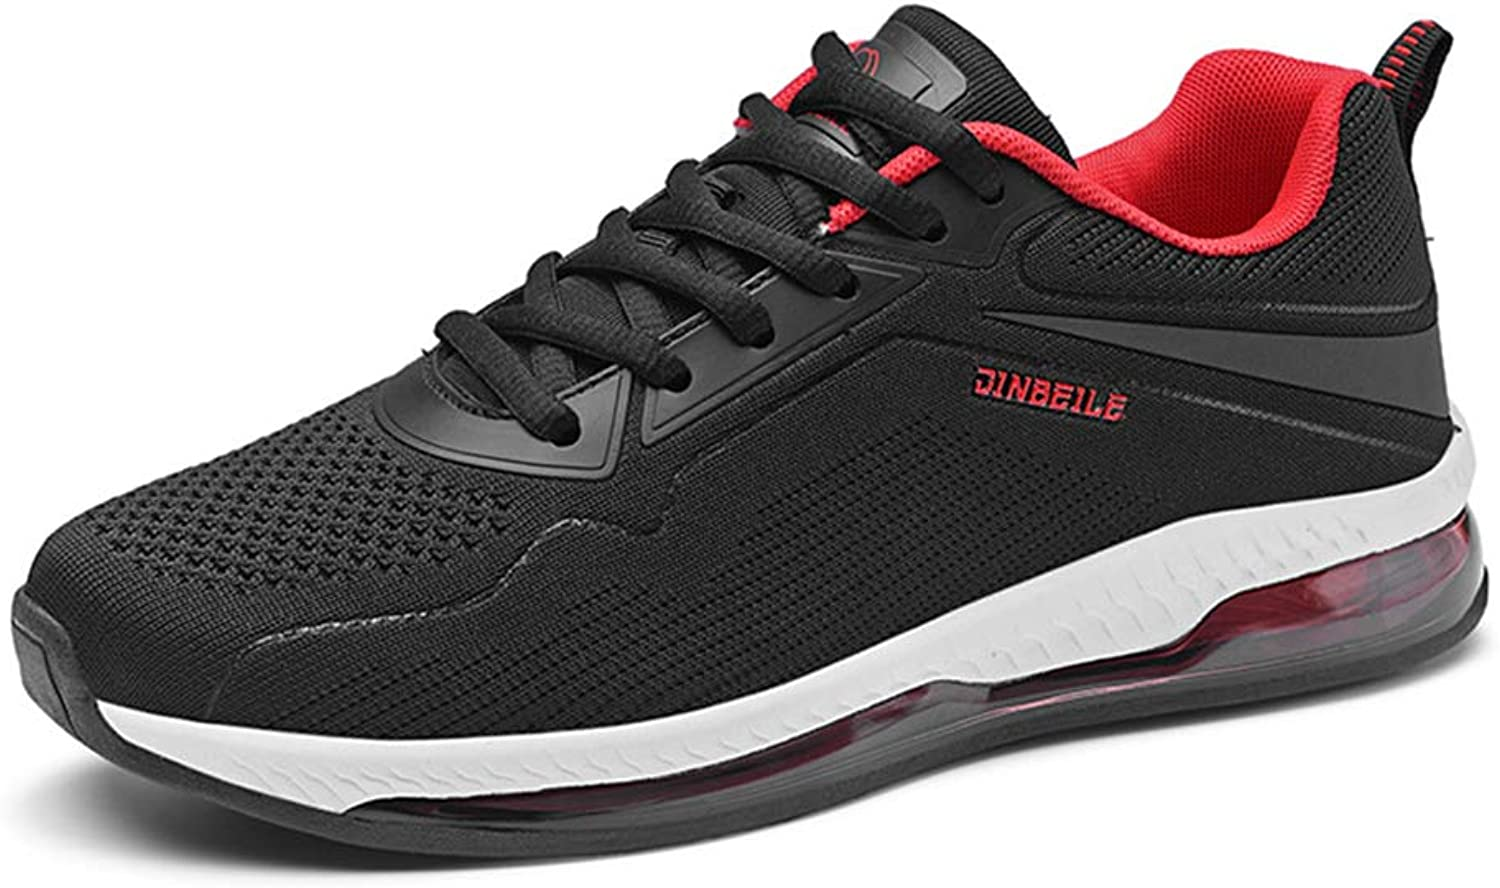 Men's Sneakers Breathable Comfortable Youth Big Boys Sport Trail Running shoes